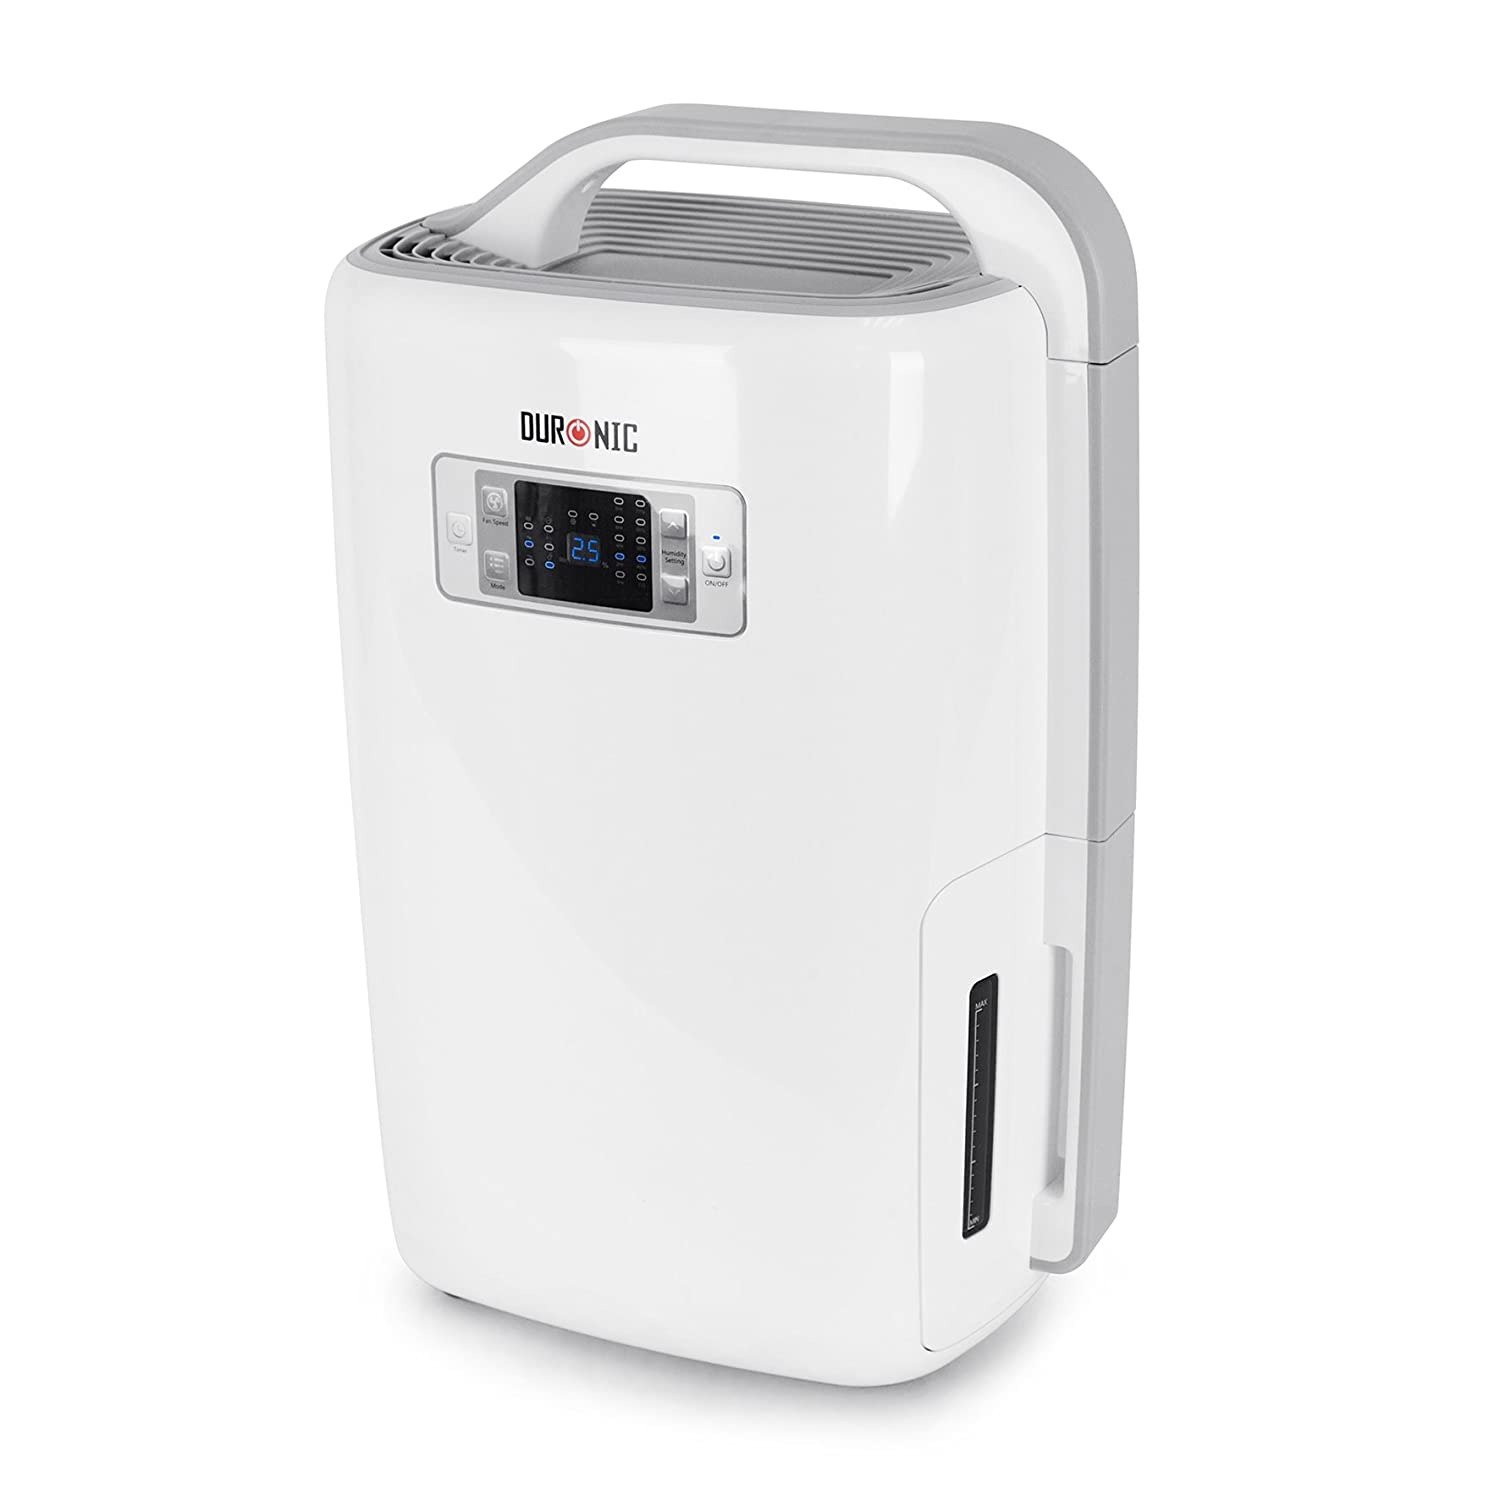 Duronic DH20 Dehumidifier 20 Litre Machine with Timer - Home Mould/Damp and Moisture Remove - Perfect for Your Home | School | Office | Caravan | Garage - Efficient 320W